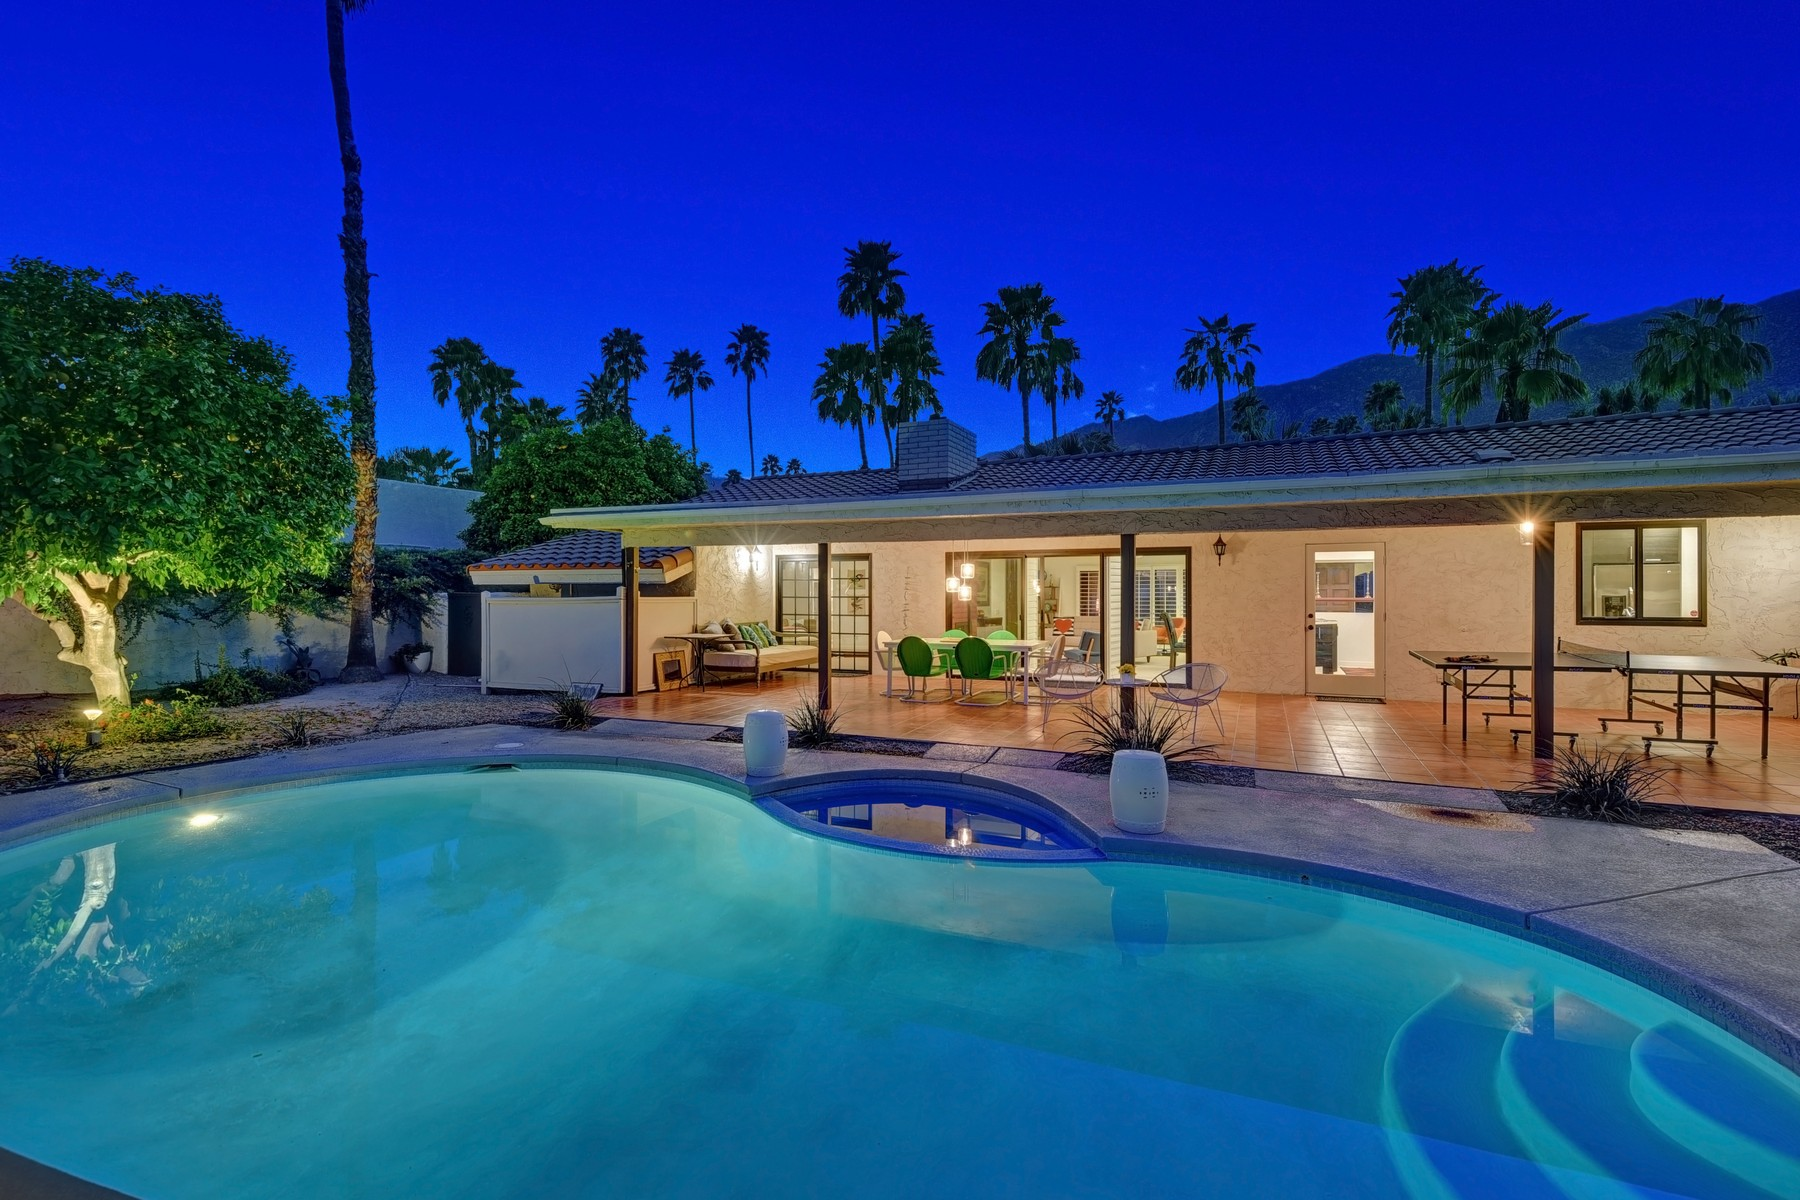 Single Family Home for Sale at 1970 South Joshua Tree Place Palm Springs, California 92264 United States